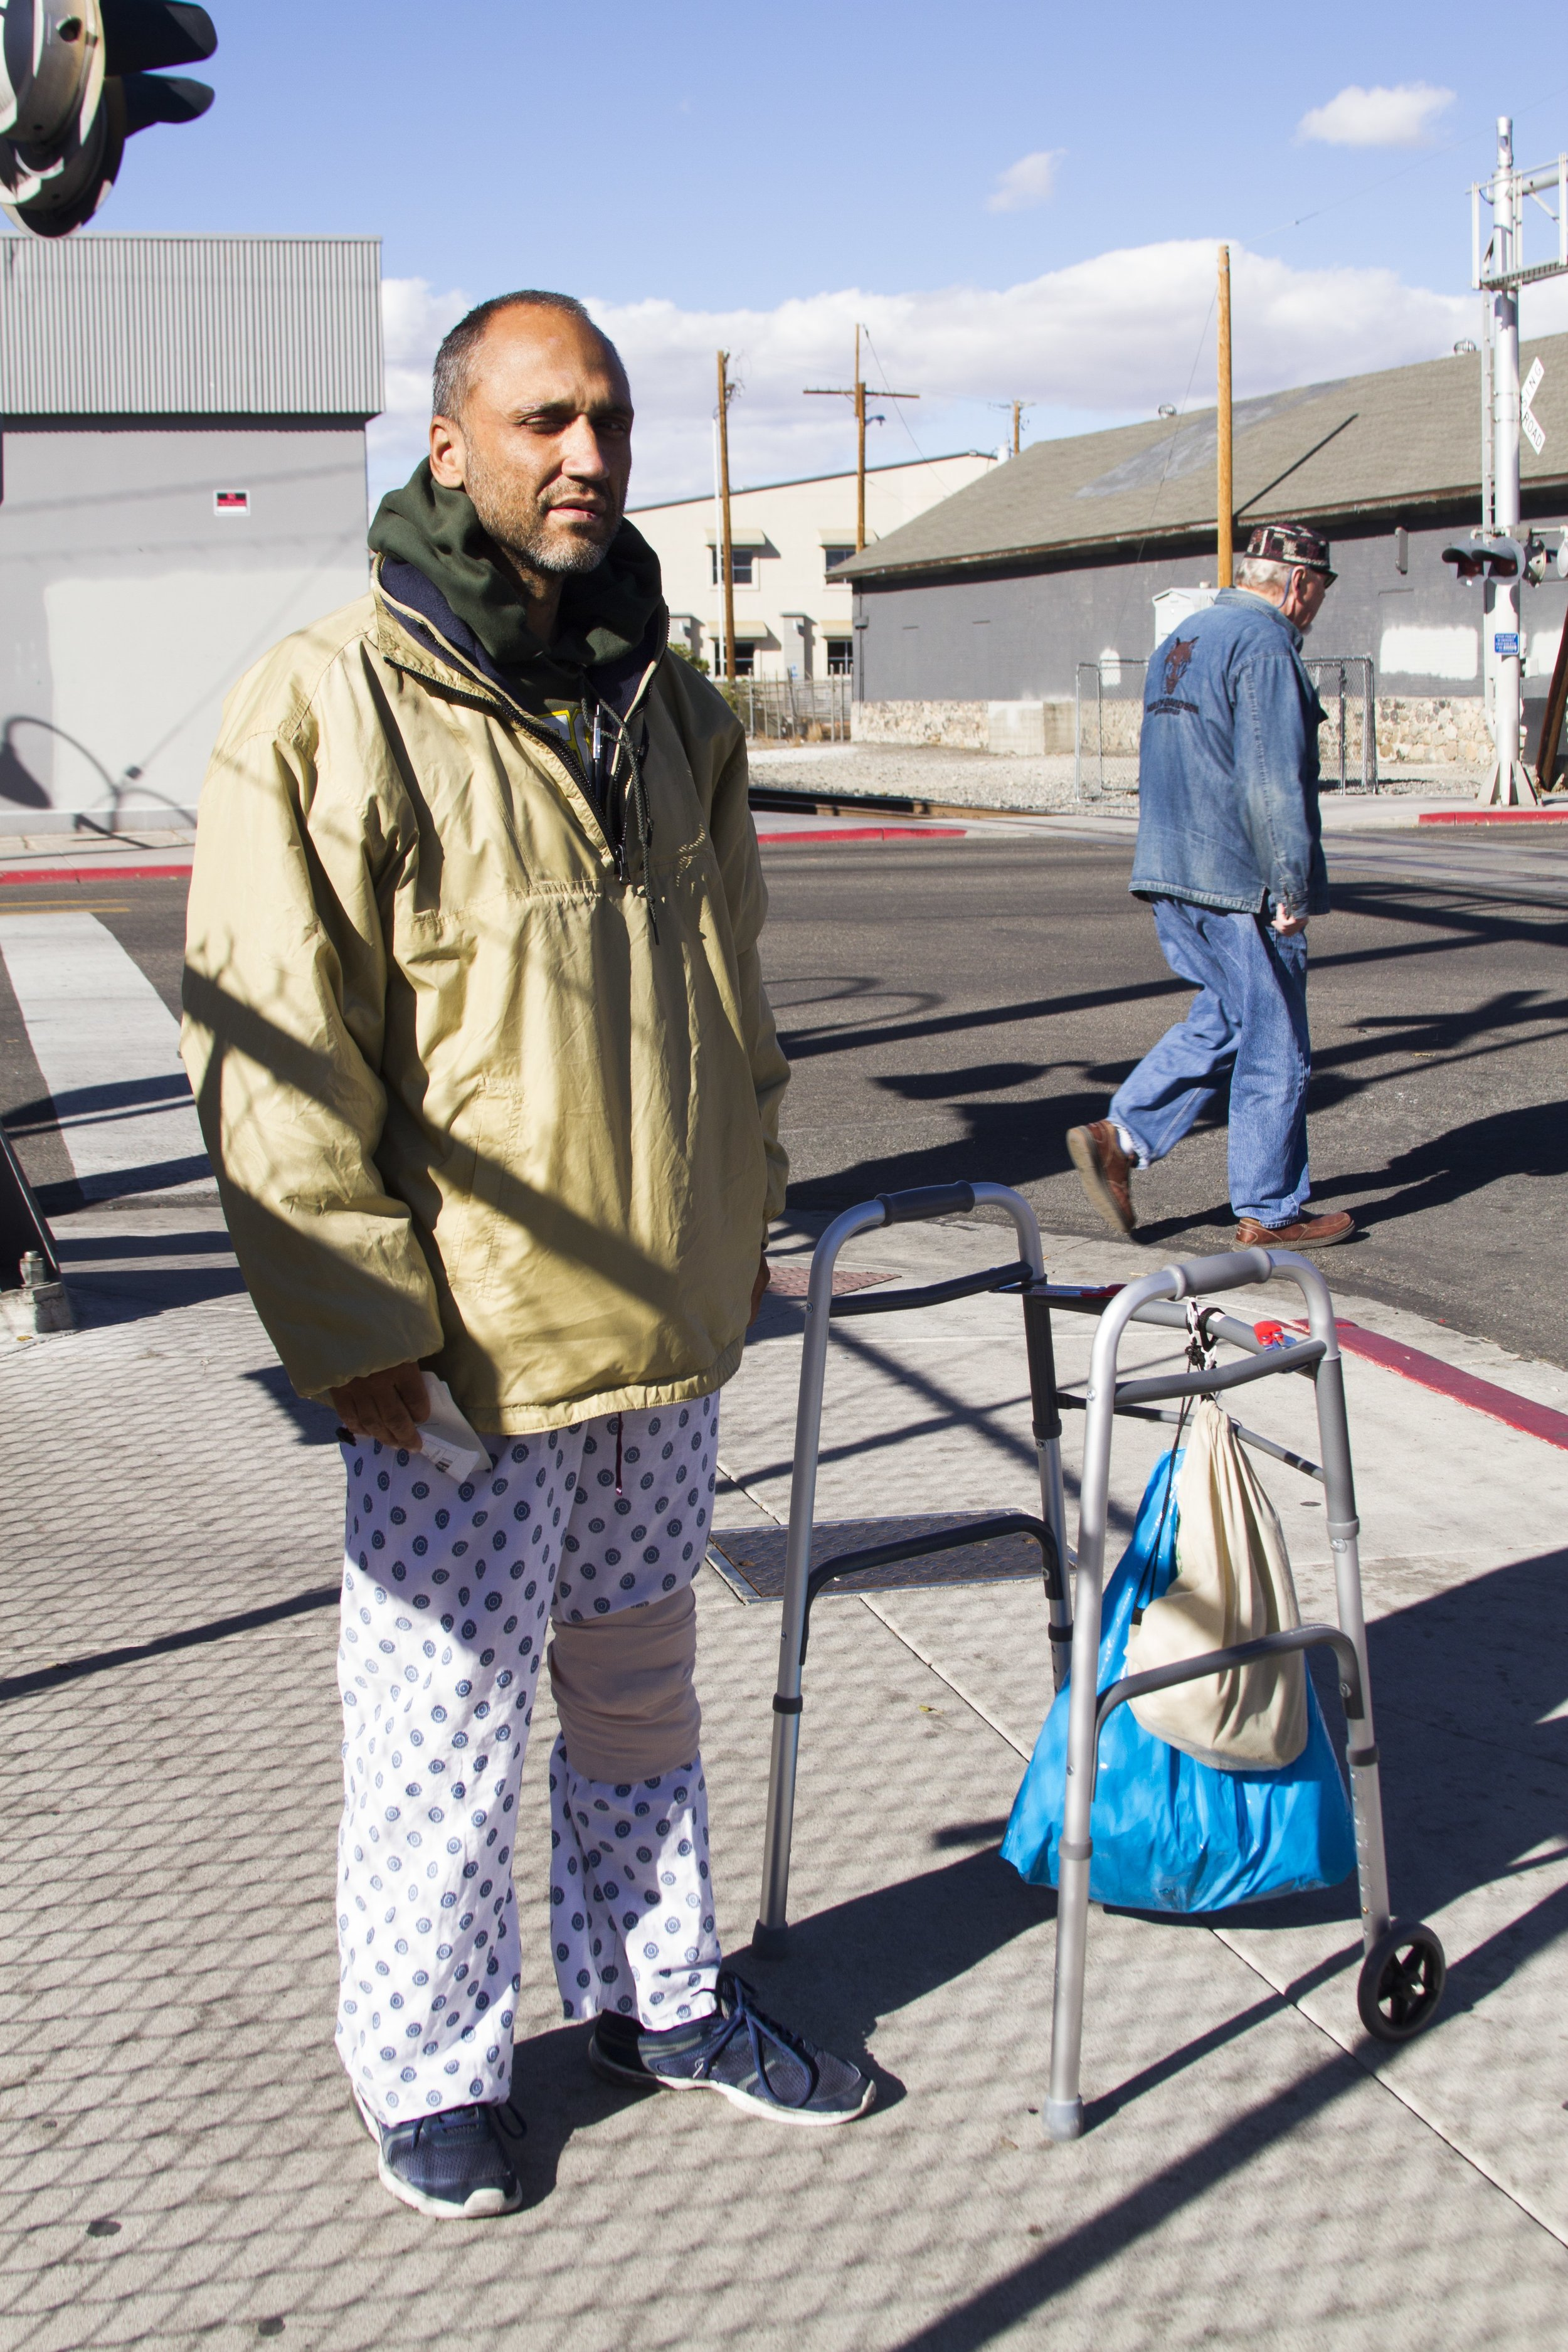 Our Town Reno first met Perez in early November. We wrote a story on people's outlook for the U.S. election. We met him on Fourth Street in downtown Reno. He was wearing a hospital gown and was slowly shuffling down the sidewalk with assistance from a walker.